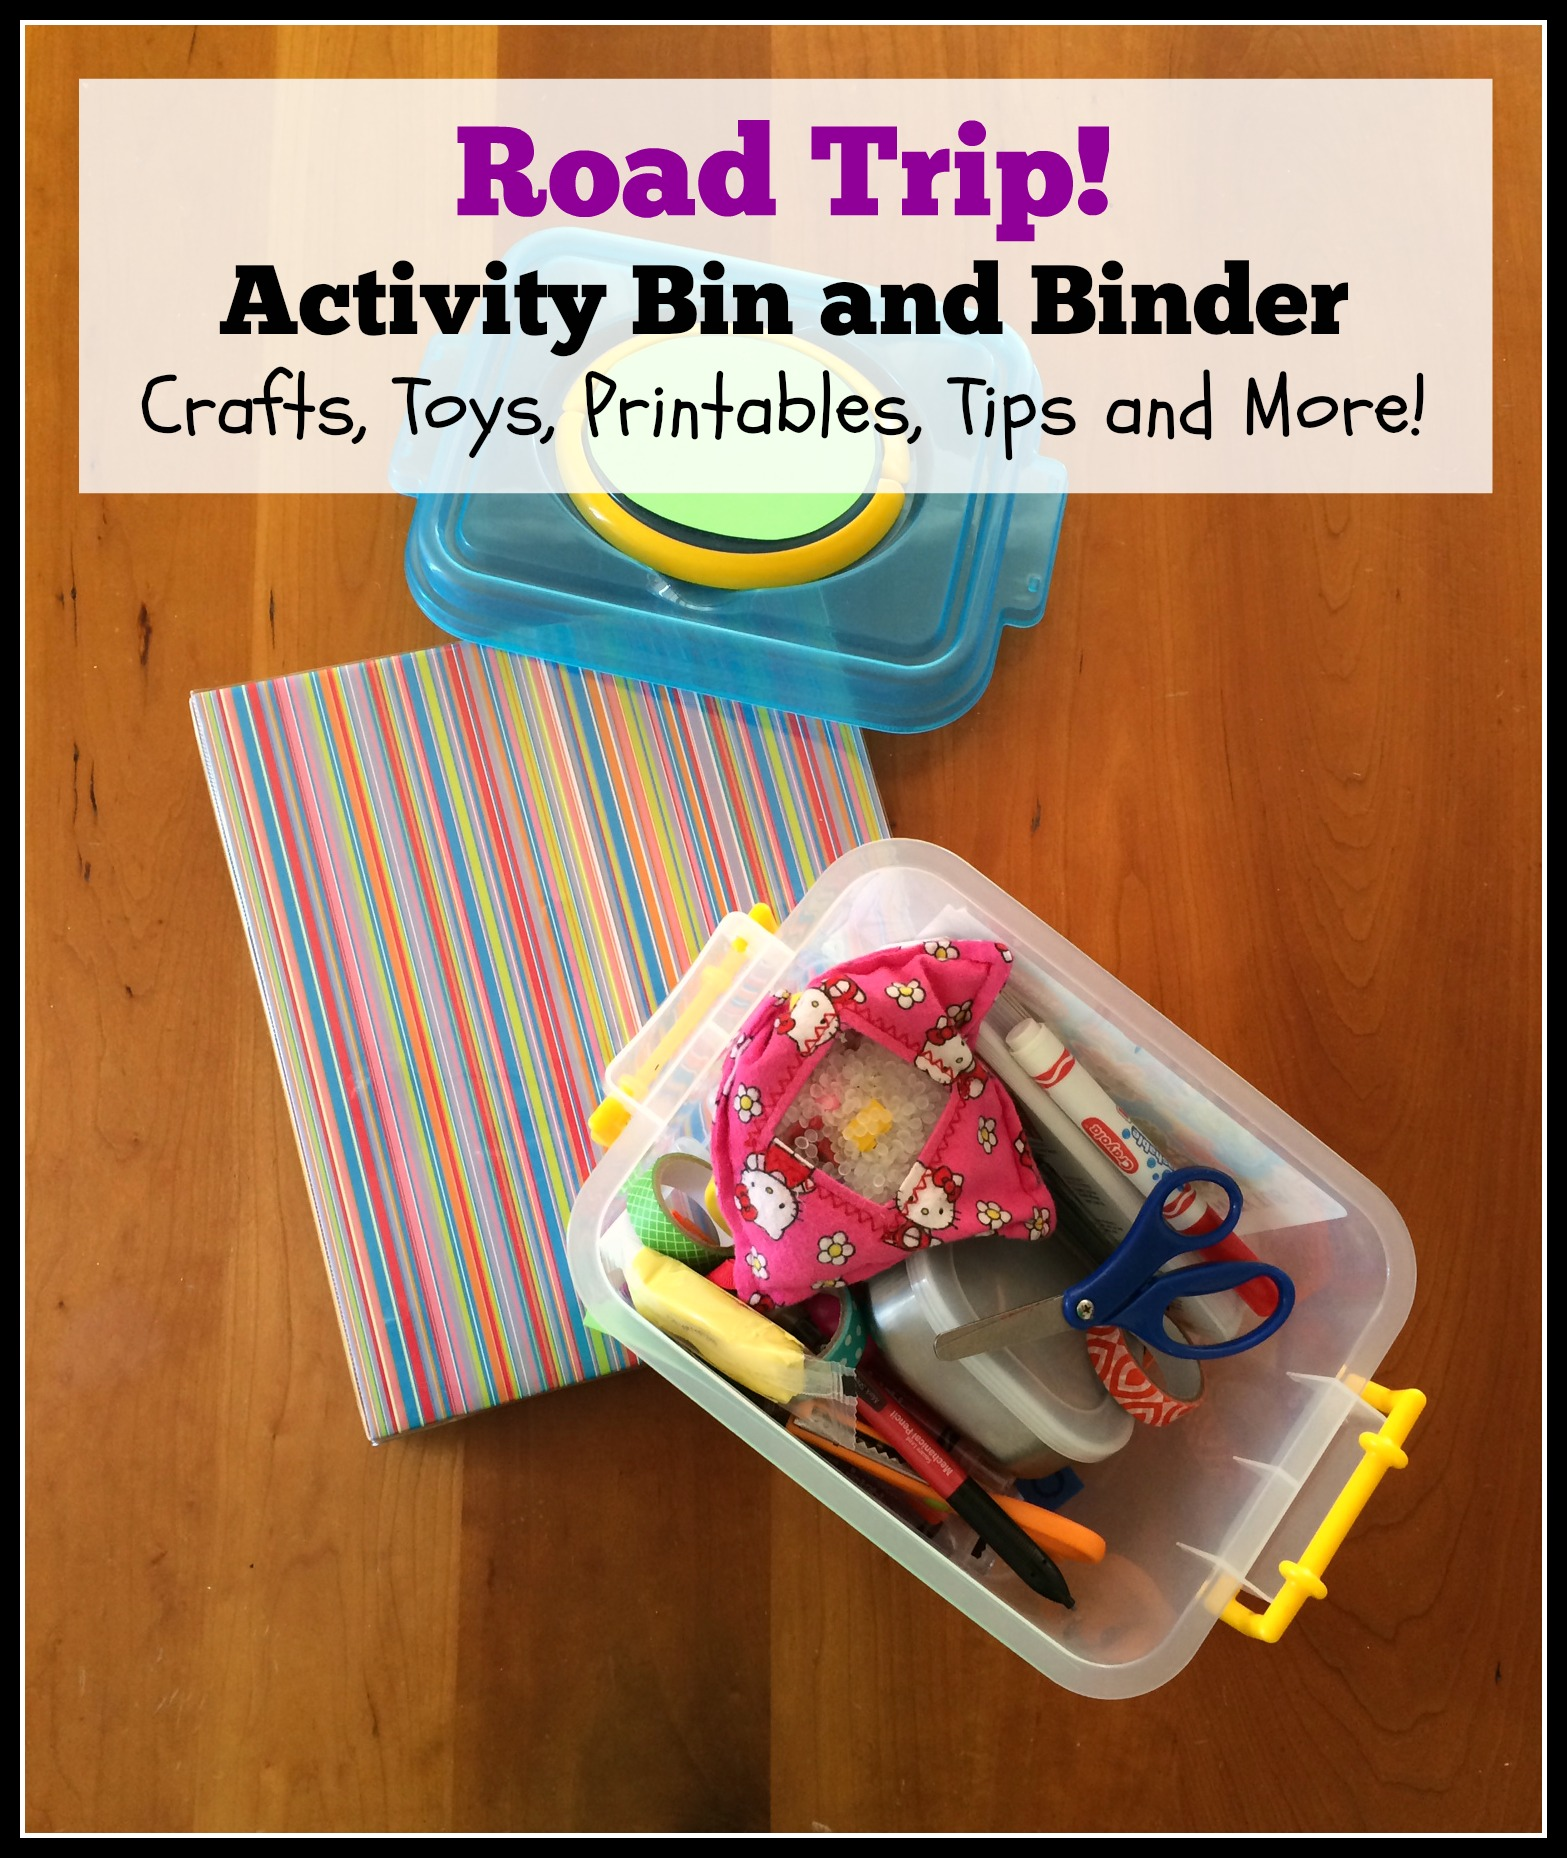 Road Trip Activity Bin and Binder crafts toys printables tips left brain craft brain